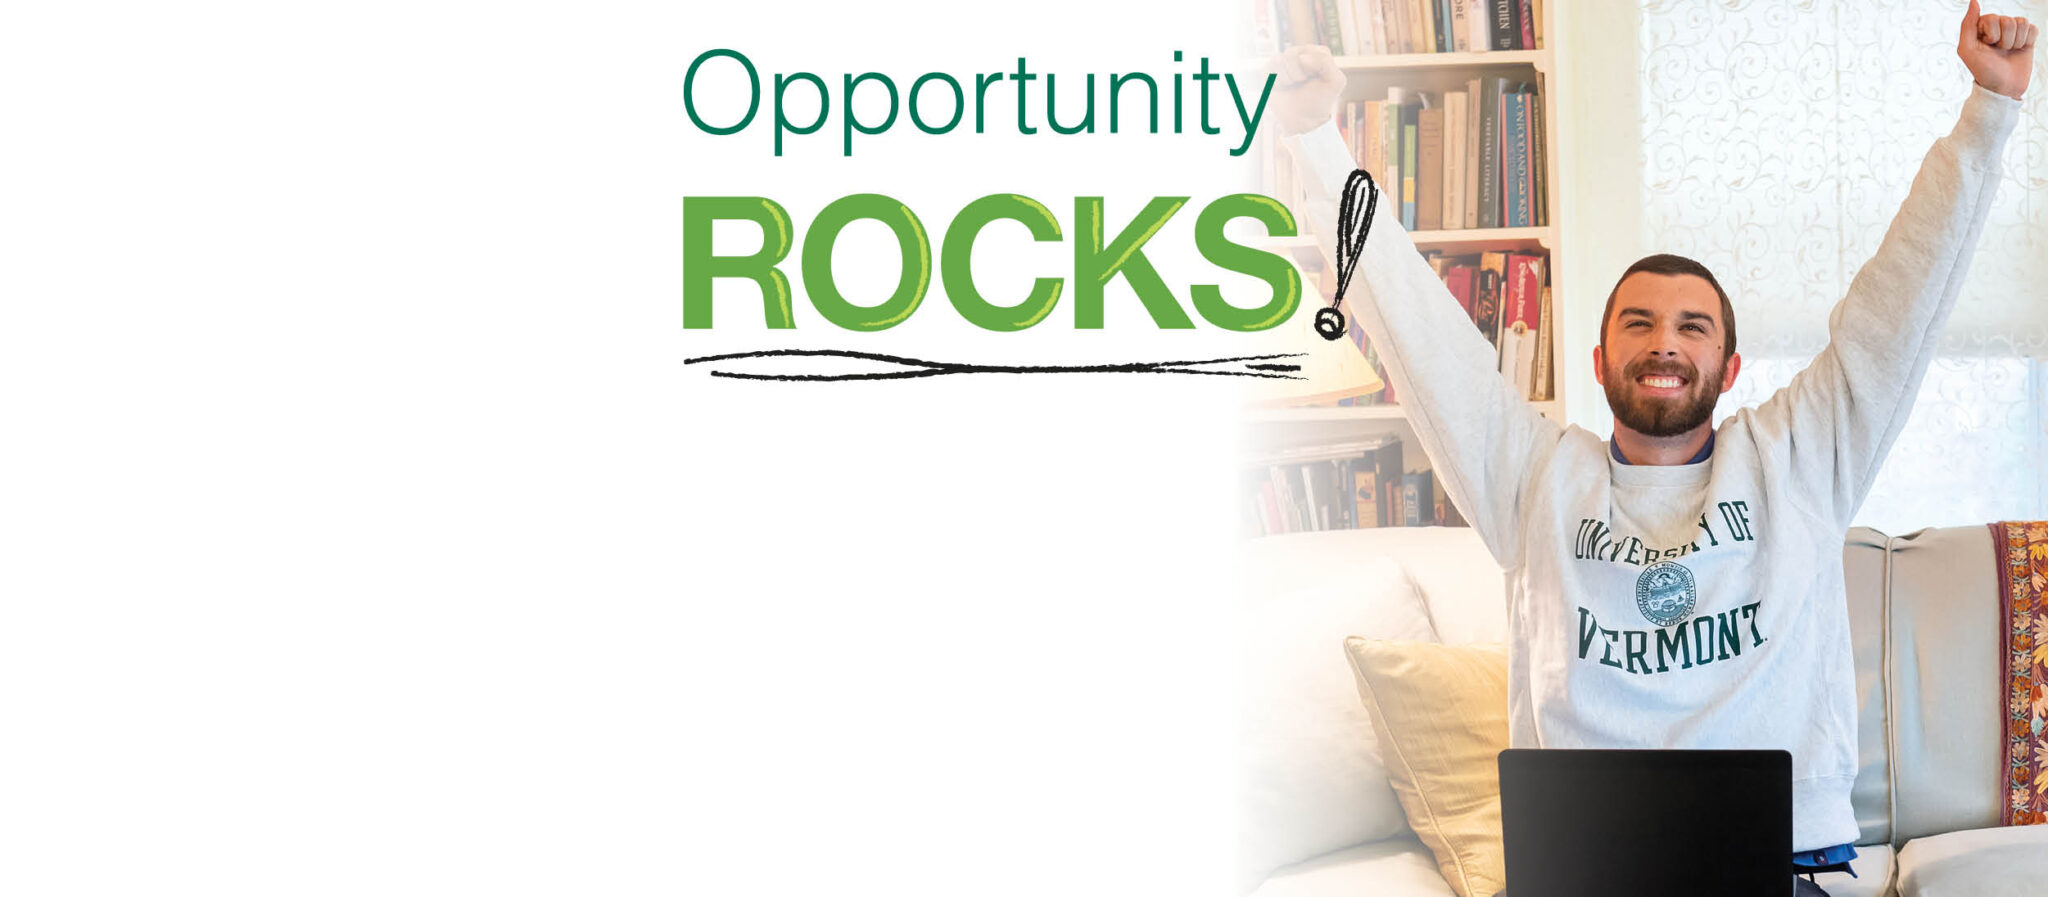 Opportunity Rocks at UVM Continuing and Distance Education